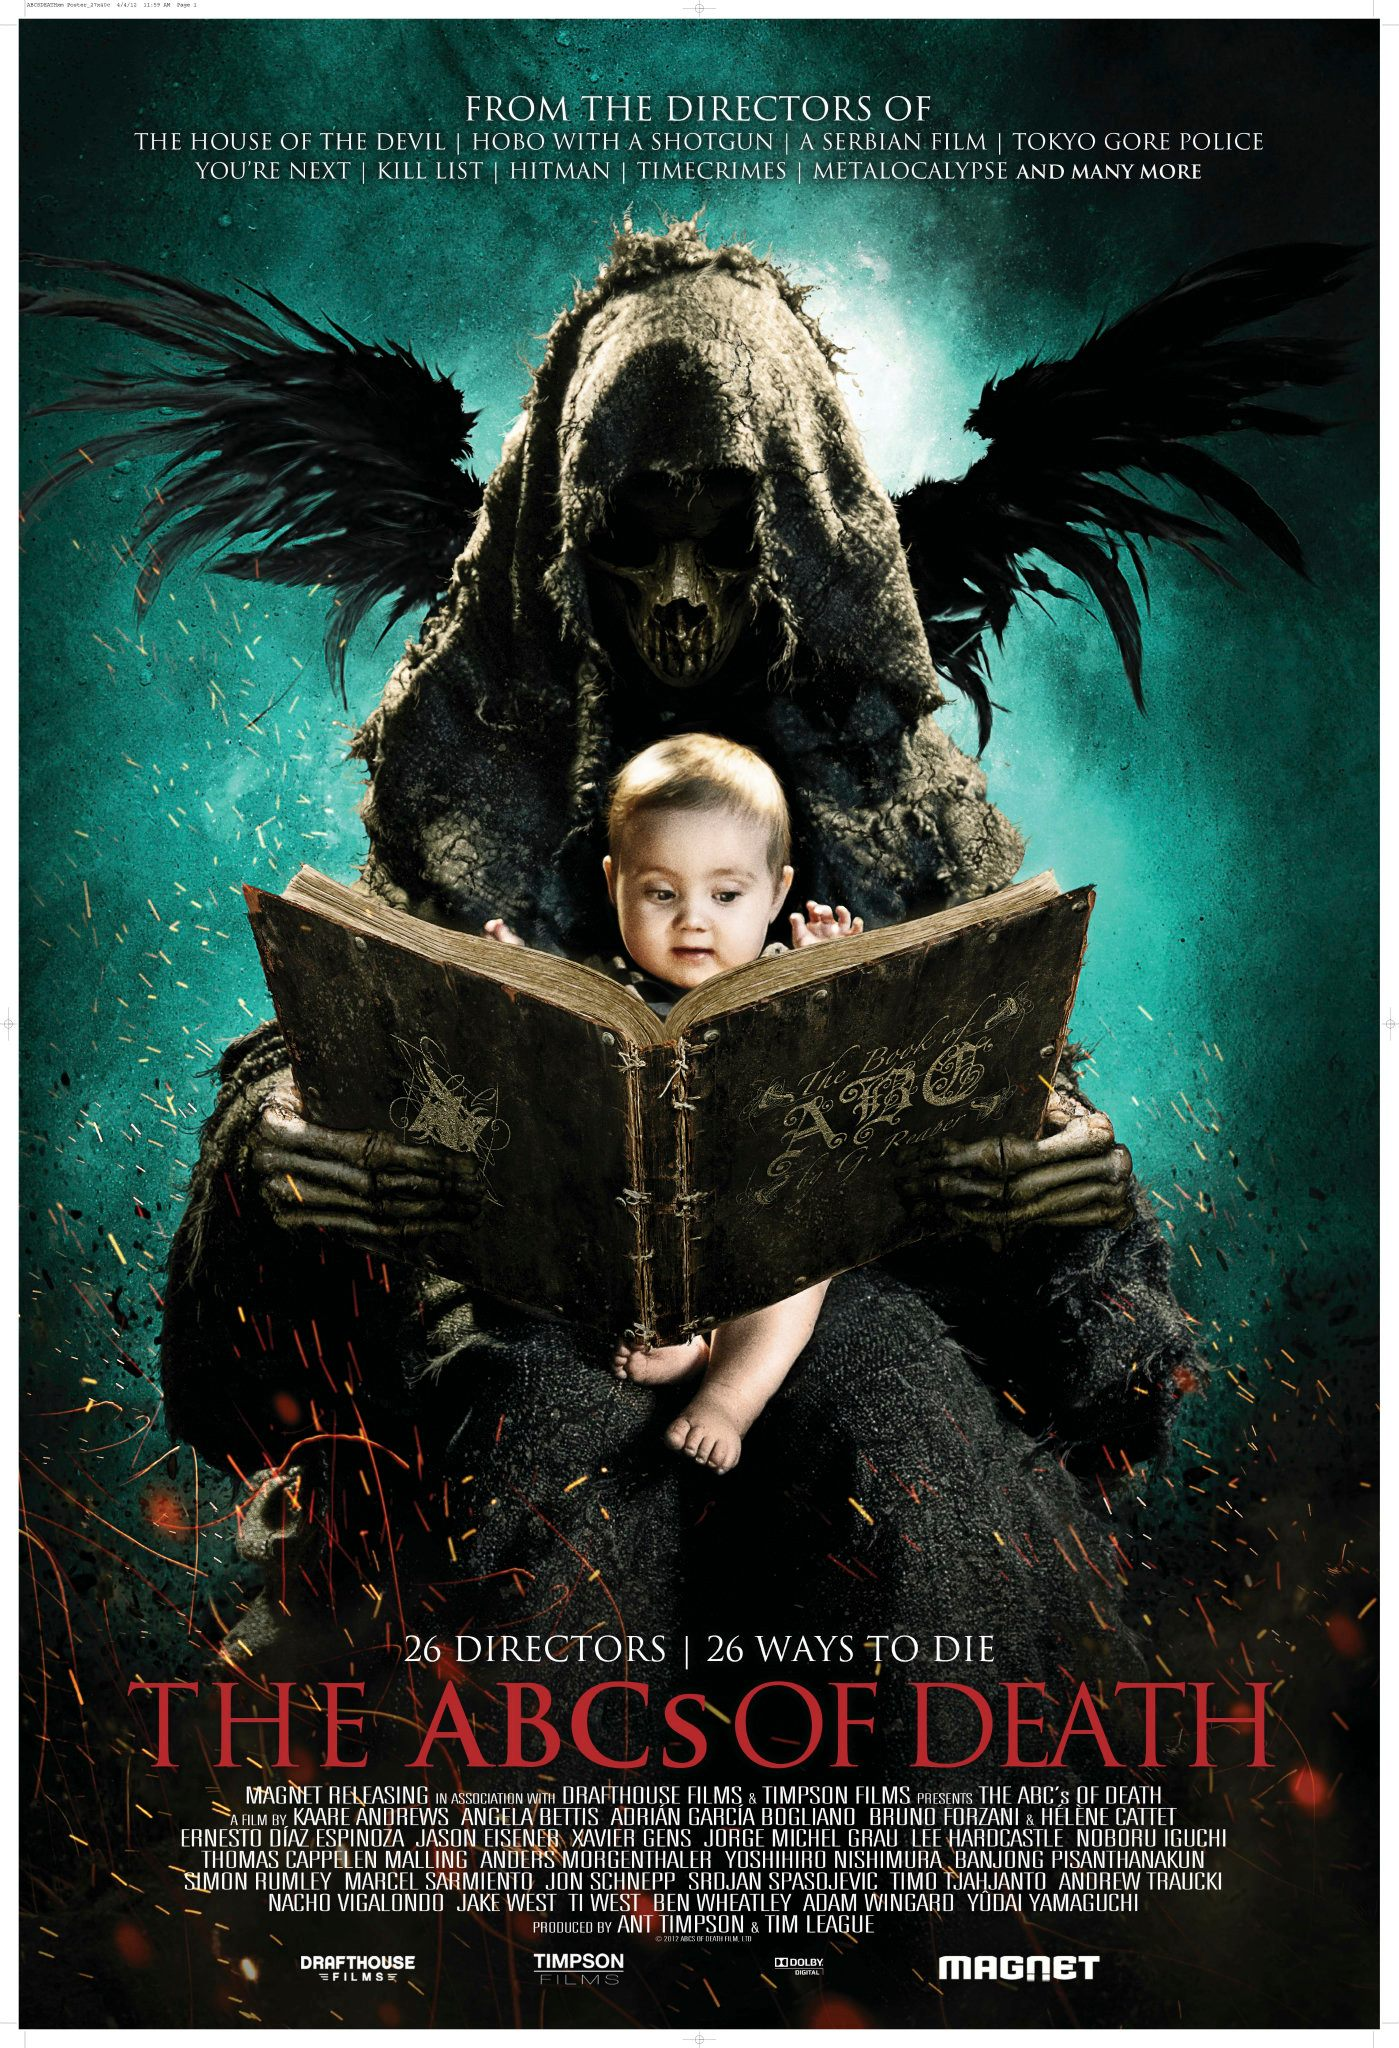 http://thewolfmancometh.files.wordpress.com/2012/10/abcs-of-death-poster-drafthouse-films-grim-reaper.jpg